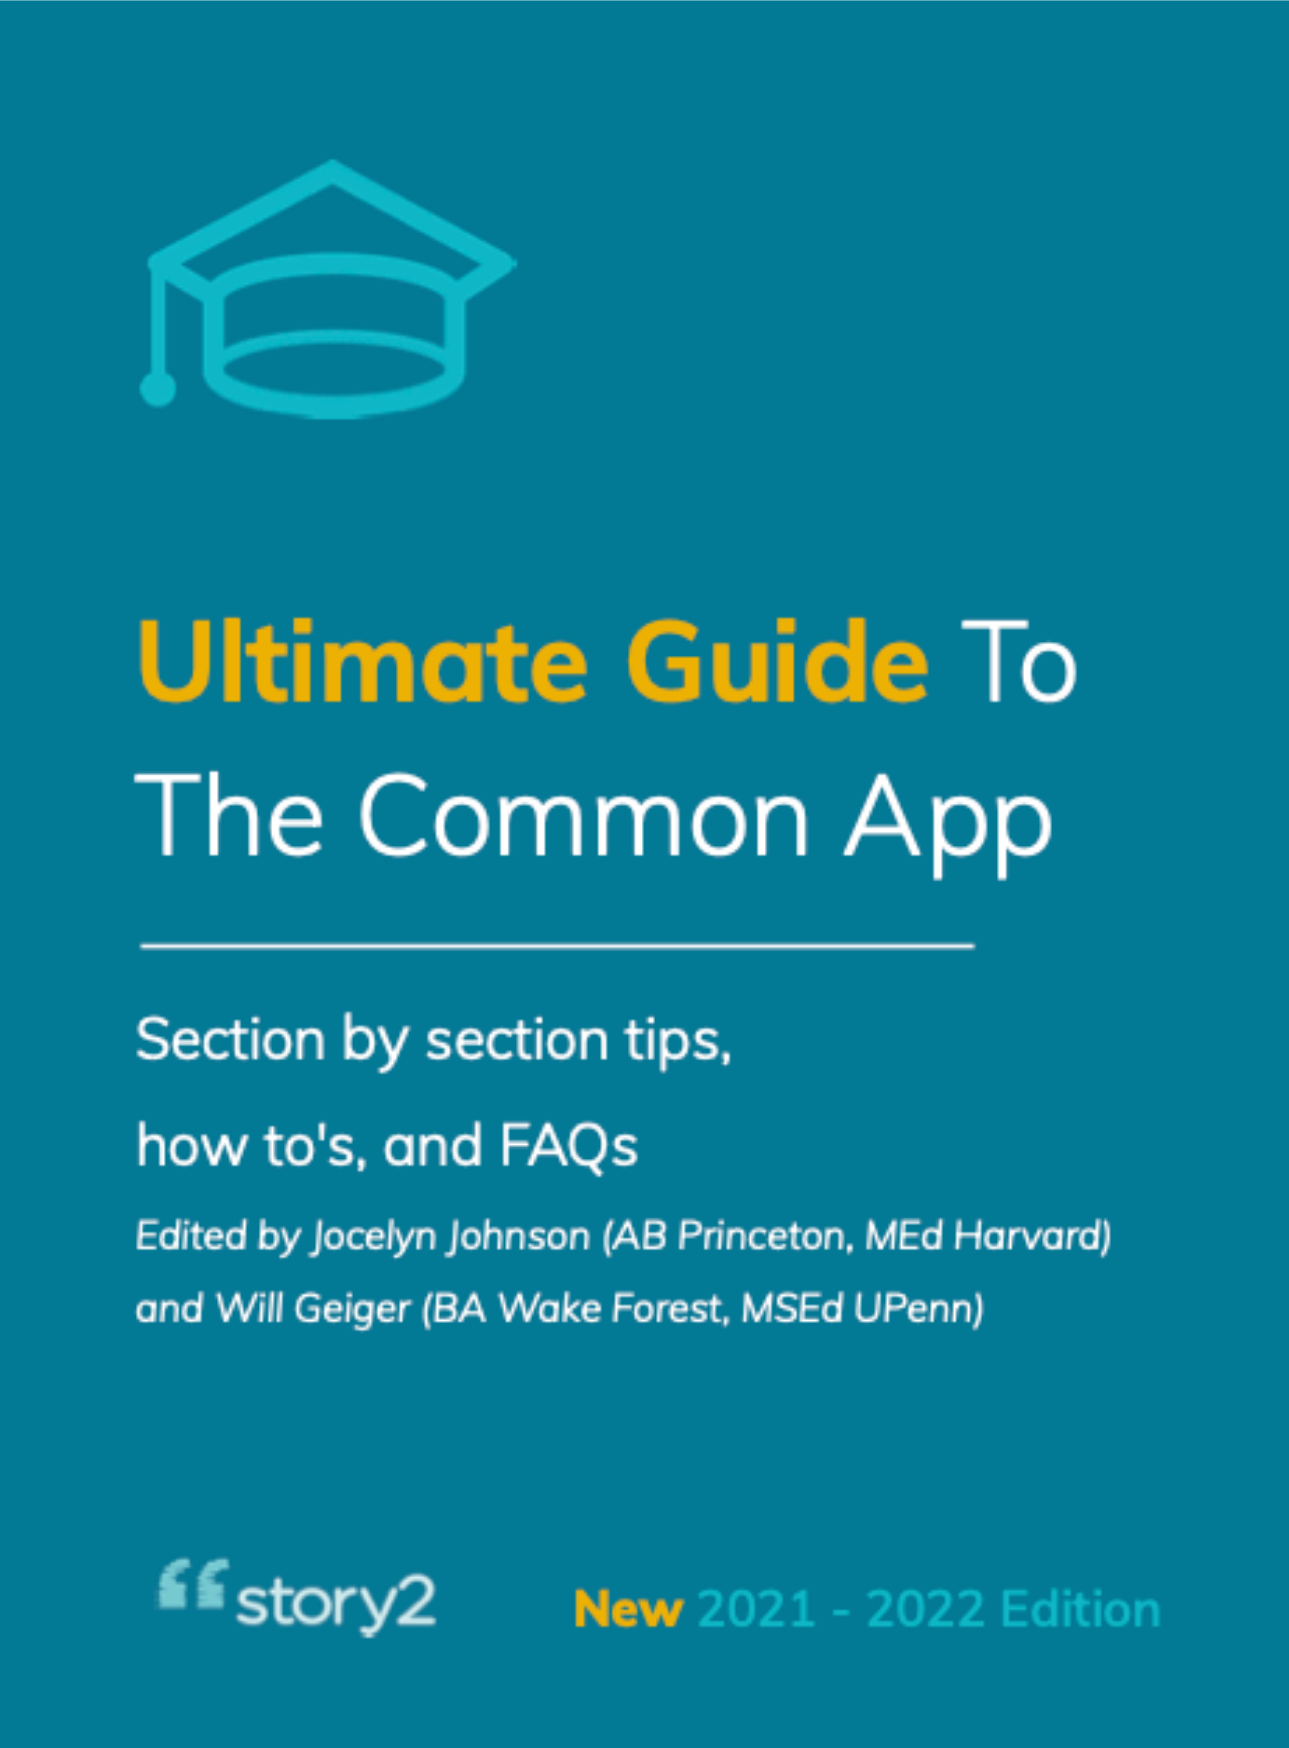 Guide to Common App Cover 2021